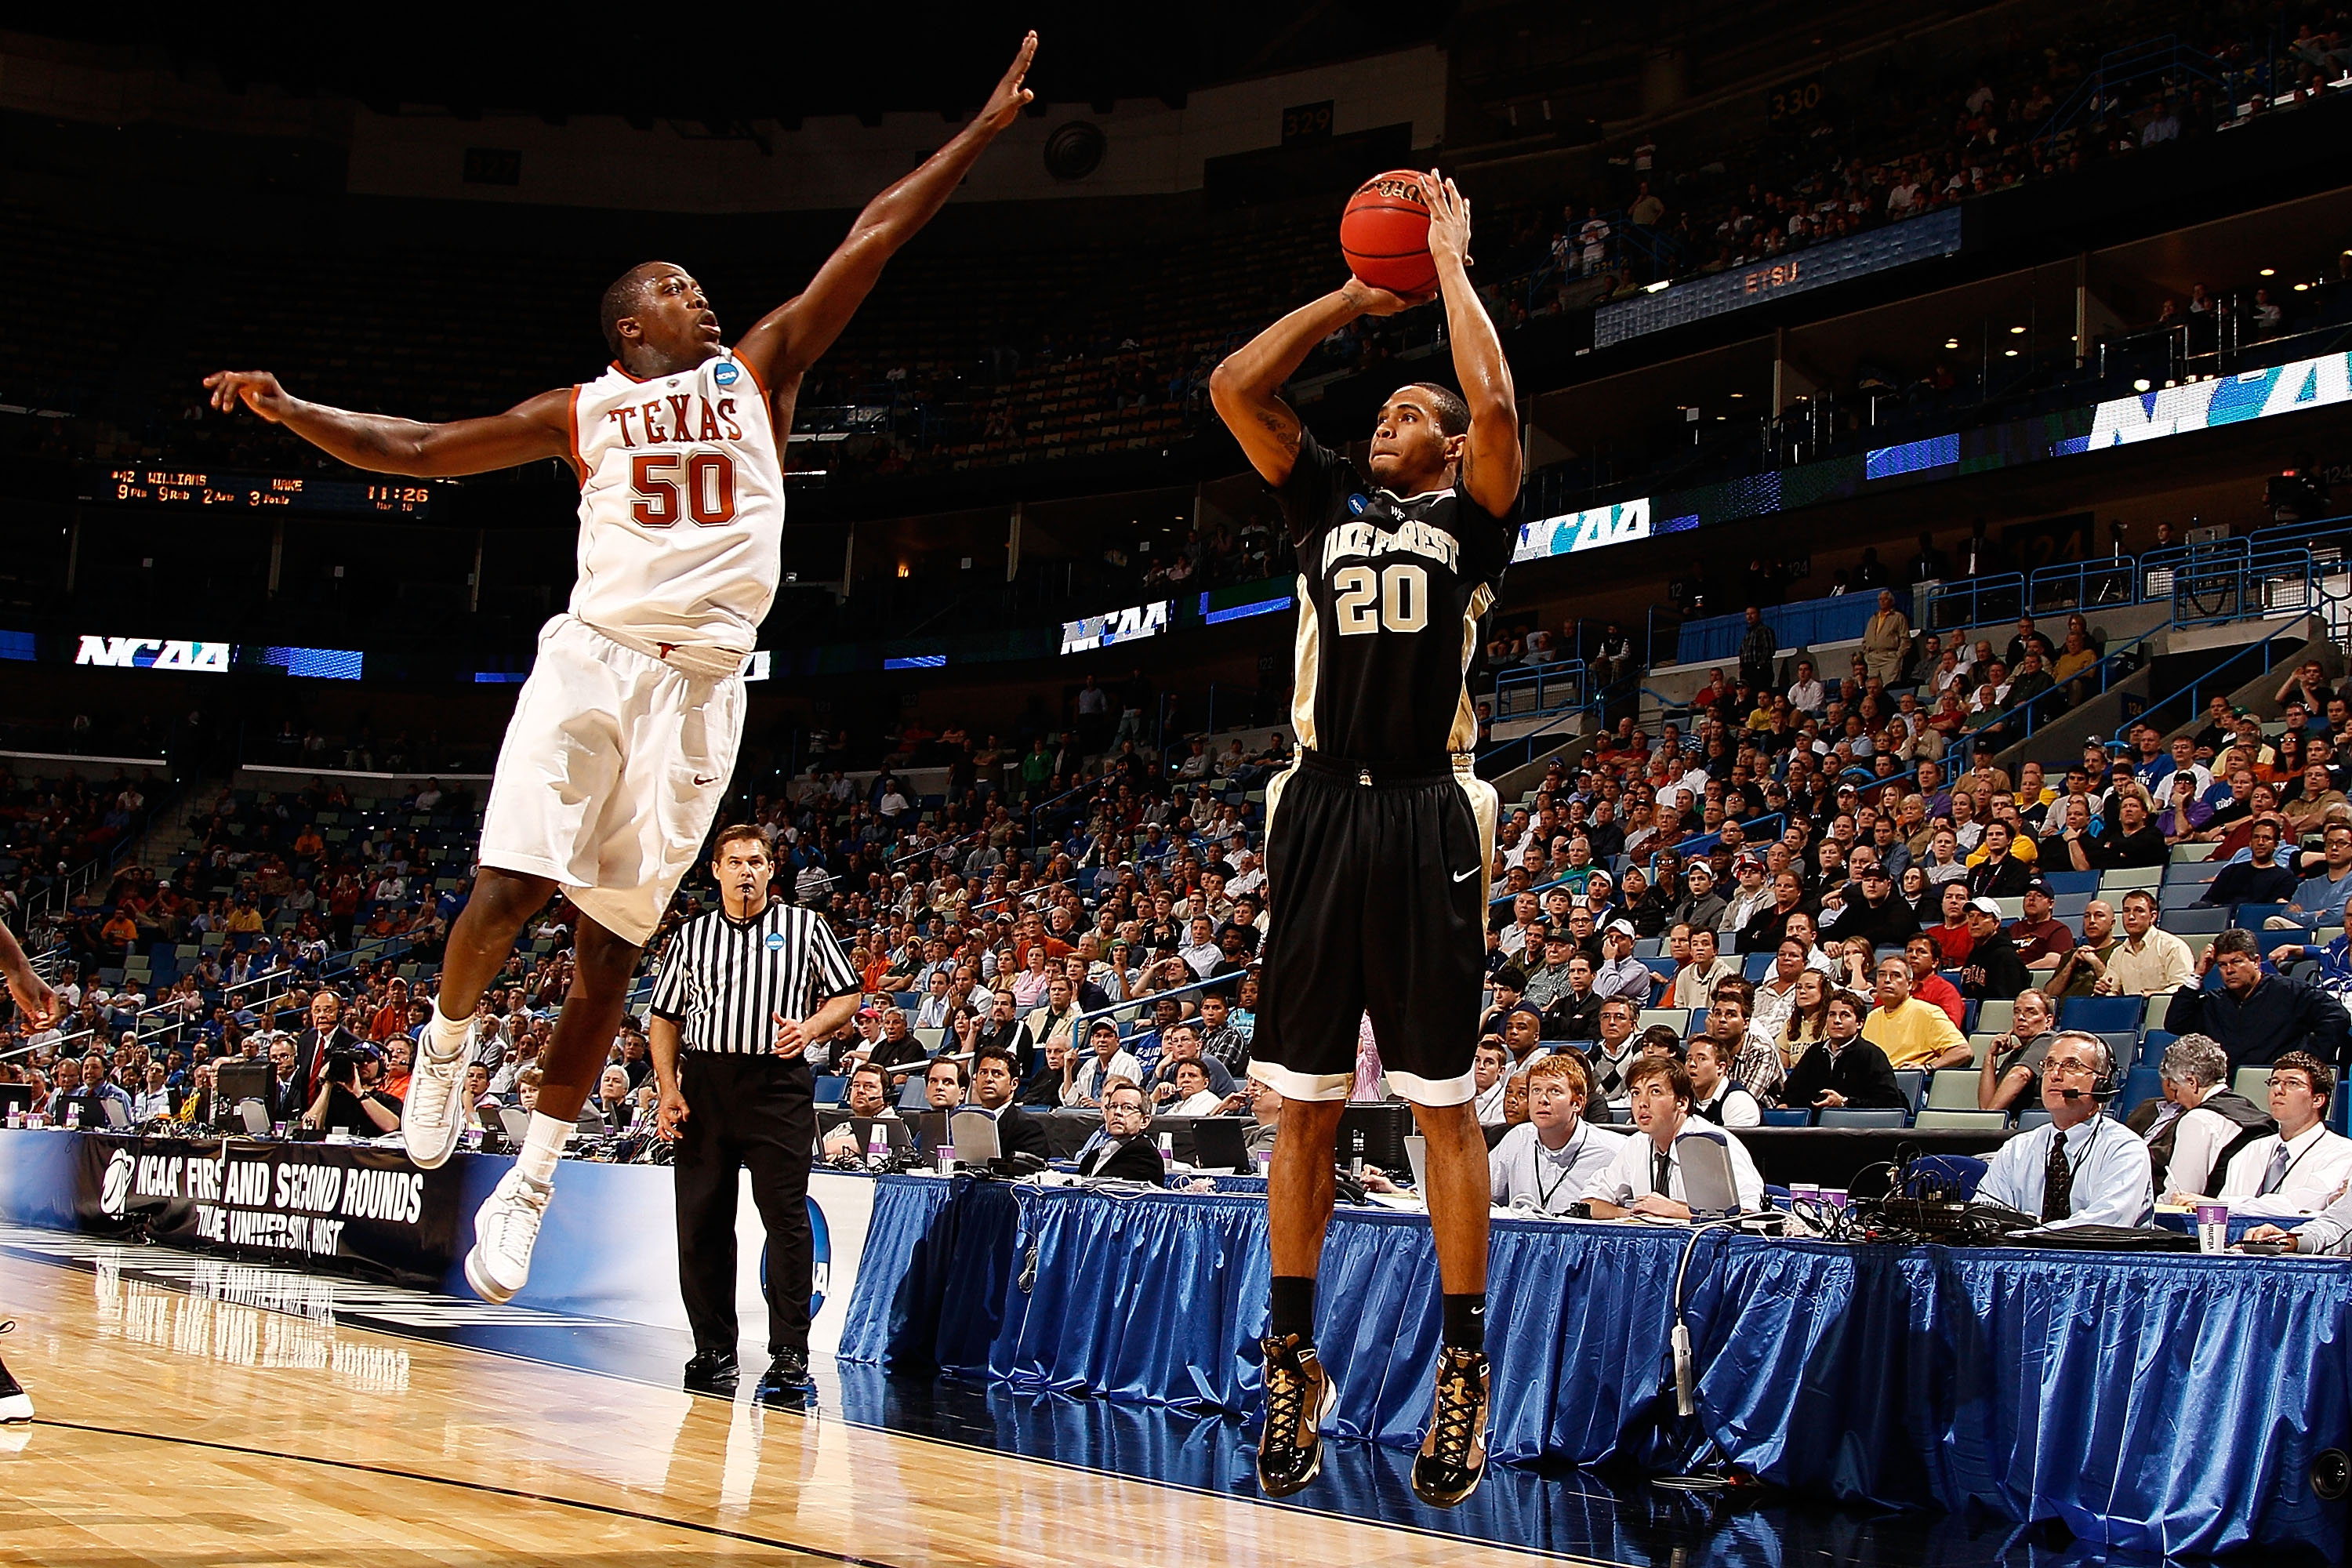 NEW ORLEANS - MARCH 18:  Ari Stewart #20 of the Wake Forest Demon Deacons makes a shot over J'Covan Brown #50 of the Texas Longhorns 81-80 in overtime during the first round of the 2010 NCAA men�s basketball tournament at the New Orleans Arena on March 18